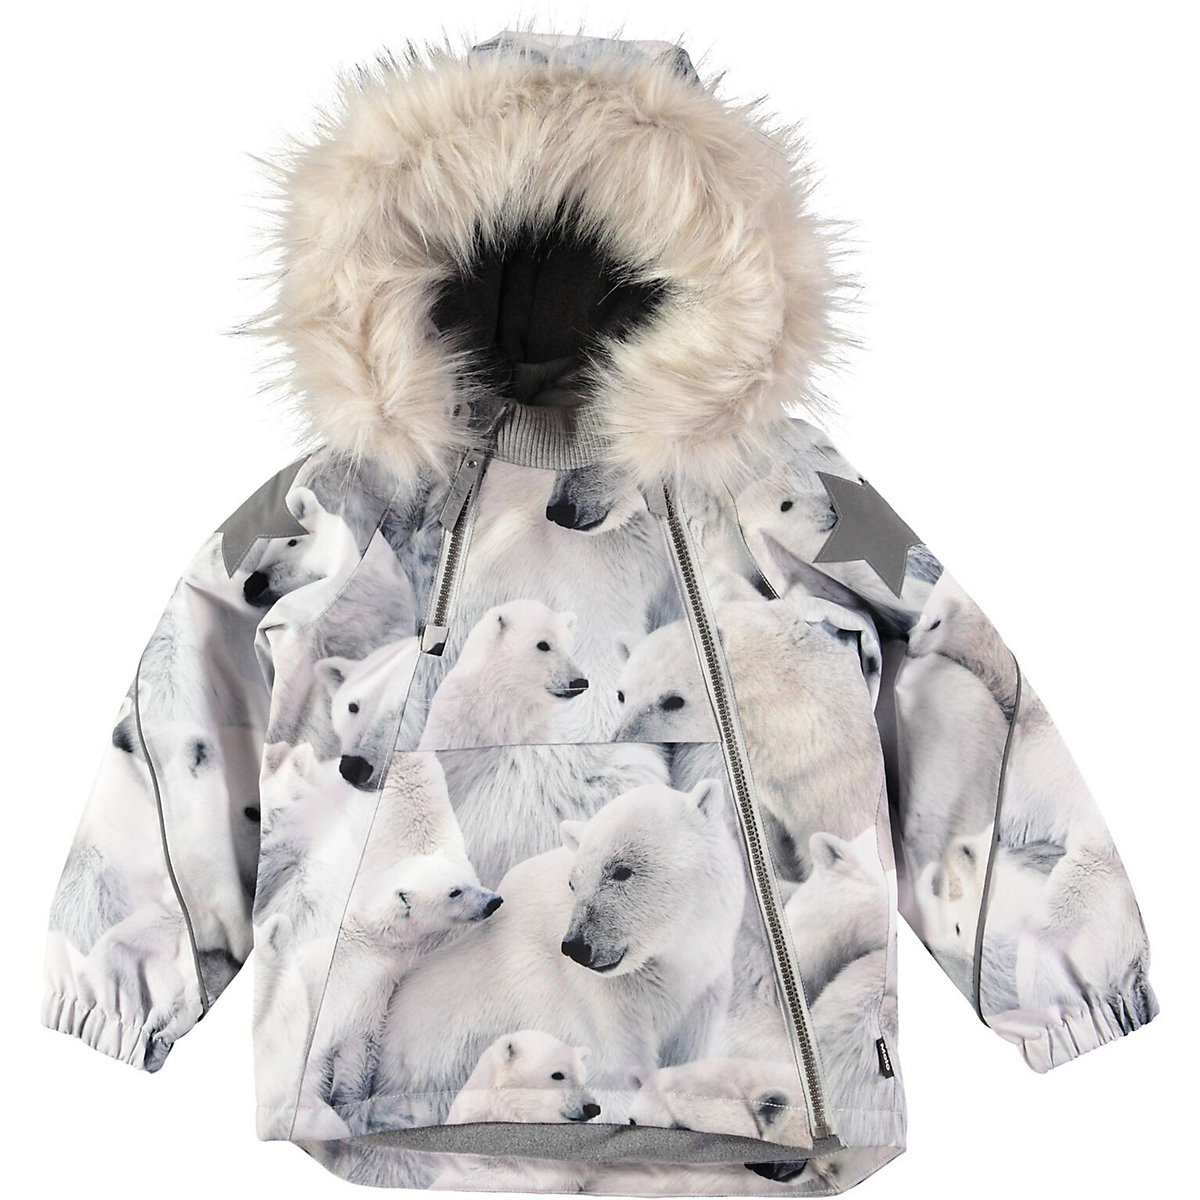 Jackets & Coats MOLO for girls 9170701 Jacket Coat Denim Cardigan Warm Children clothes Kids new fashion winter jacket women fur collar hooded jacket warm thick coat large size slim for women outwear parka women g2786